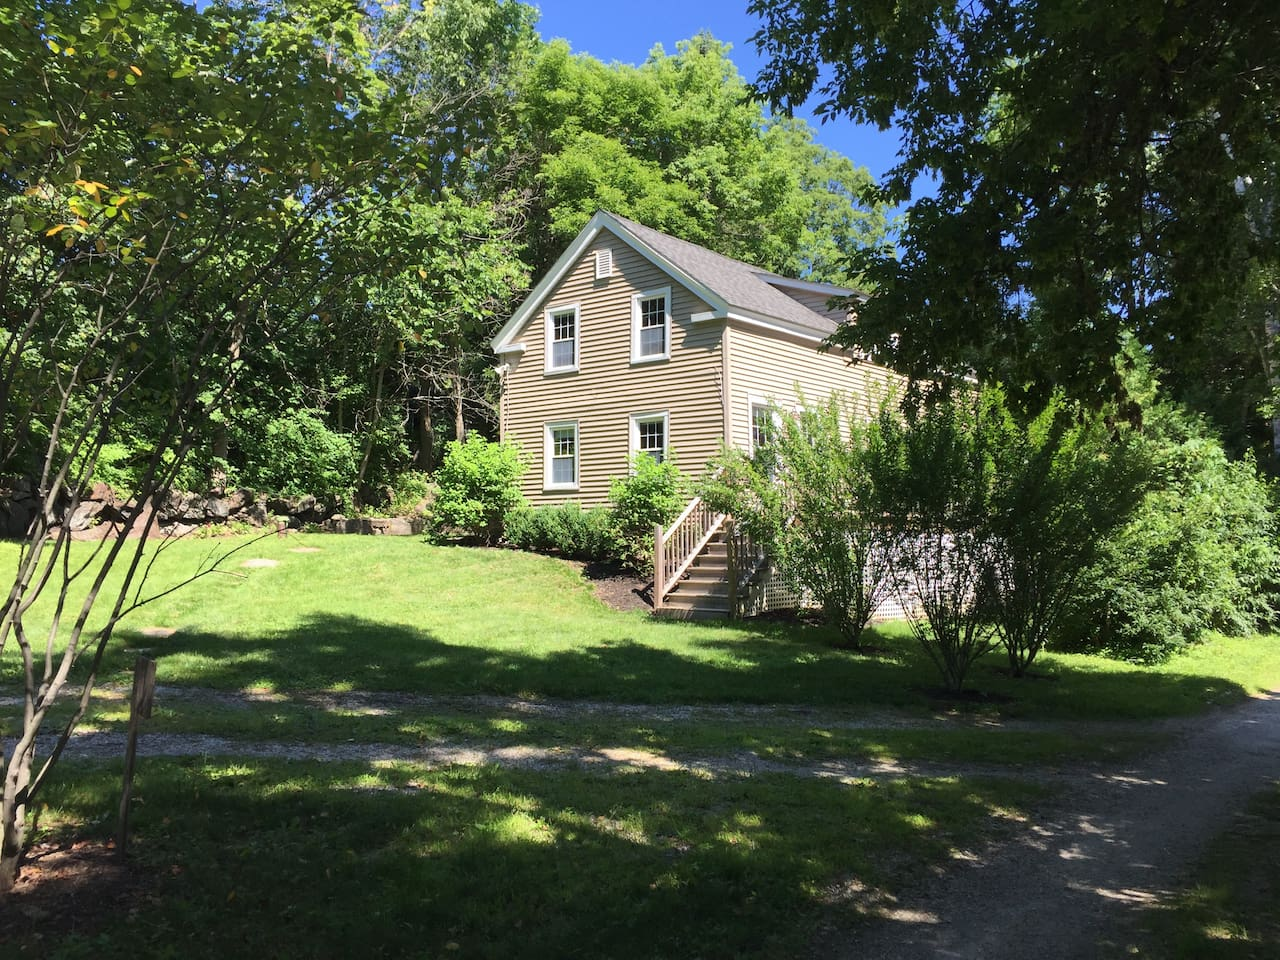 Newly renovated cottage in Salibsury, CT, steps from the Great Falls, the Housatonic River and the AT!